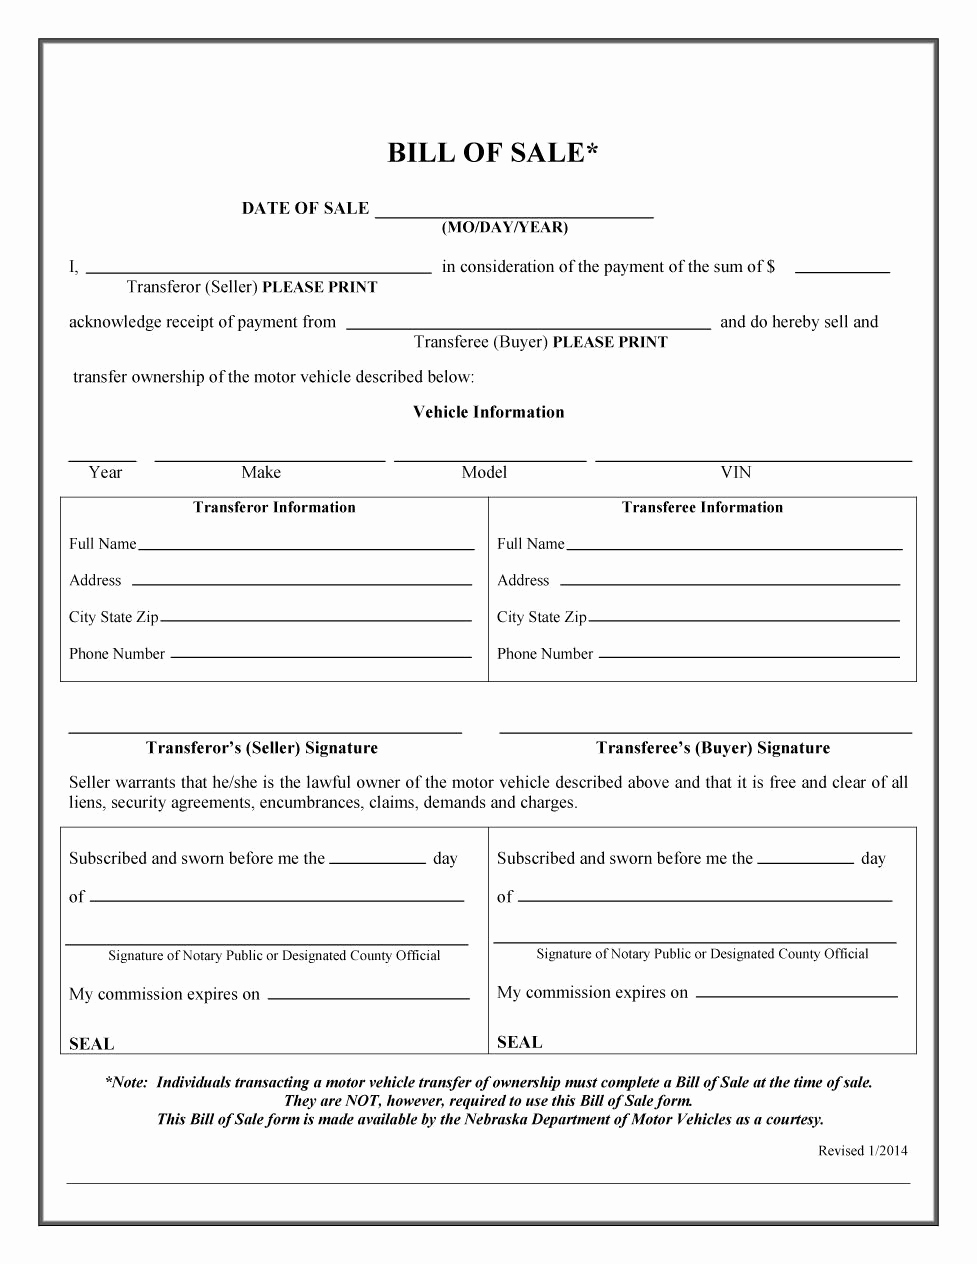 Bill Of Sale Free Luxury 45 Fee Printable Bill Of Sale Templates Car Boat Gun